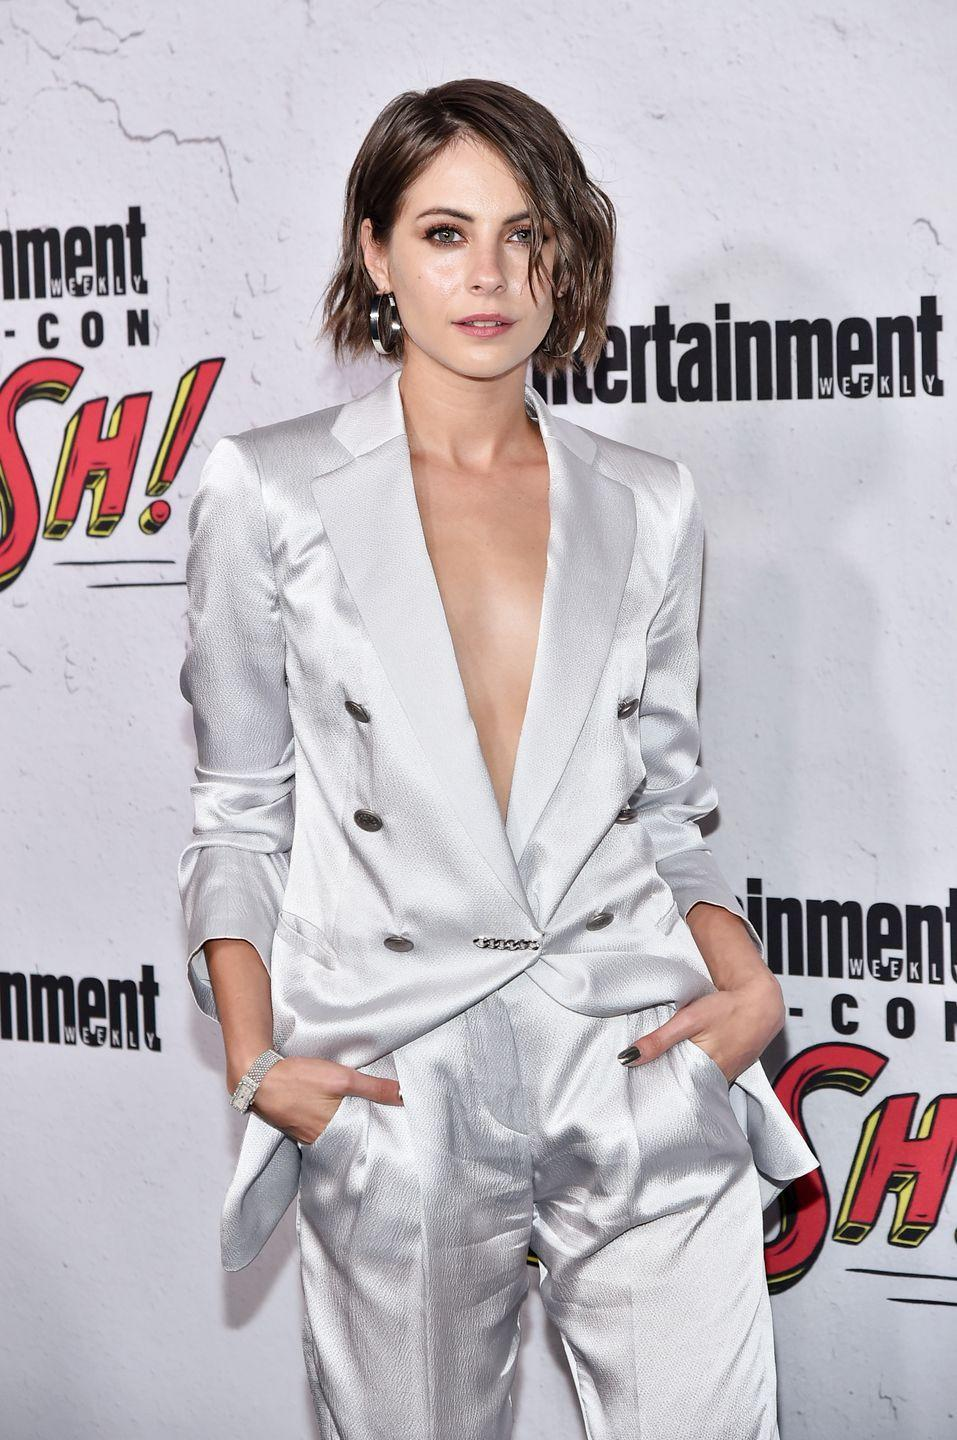 <p>It's a <em>Gossip Girl</em> mini-reunion! Willa played Thea Queen on <em>Arrow </em>alongside fellow <em>GG </em>alum Katie Cassidy. Peep her Instagram feed to see her chill off-duty life, like face masking, lounging at the beach, and her adorable dogs.</p>